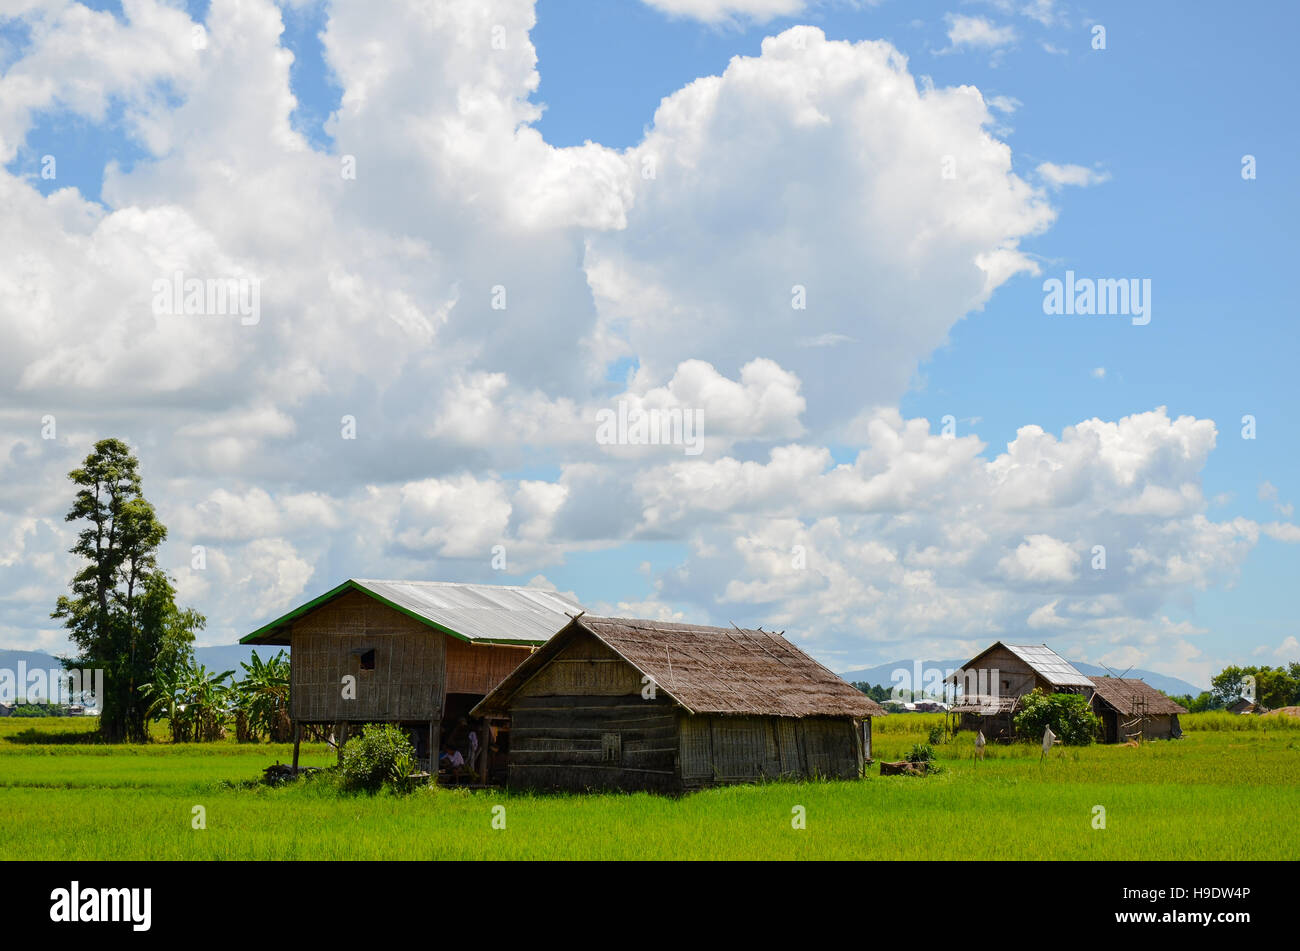 Typical rural landscape in Myanmar with traditional bamboo huts and blue deep sky Stock Photo